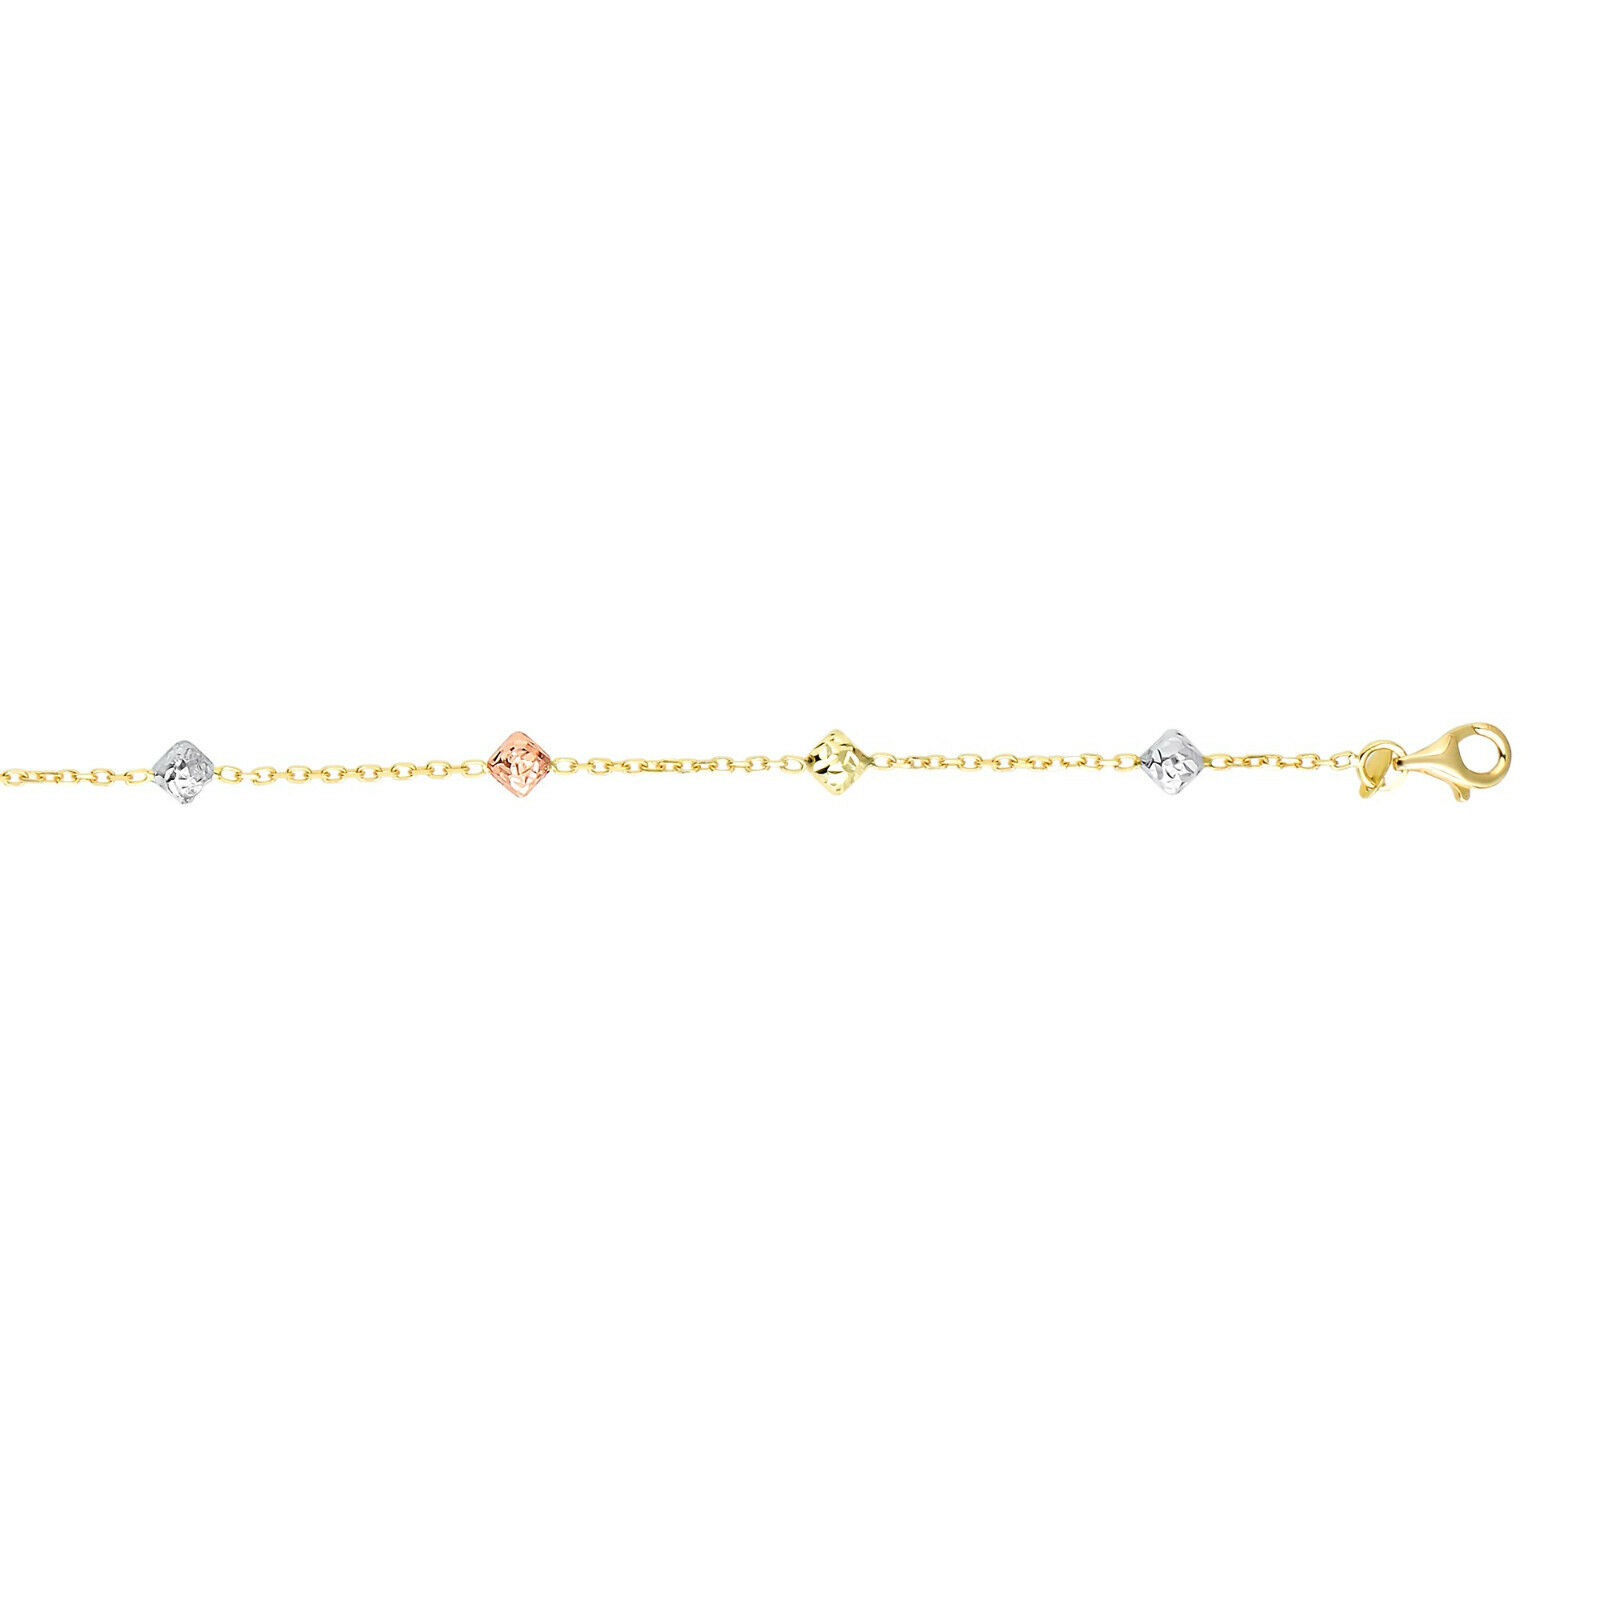 14k Yellow pink White gold 4.6mm Textured Diamond Shape Tri-color Bead Bracelet